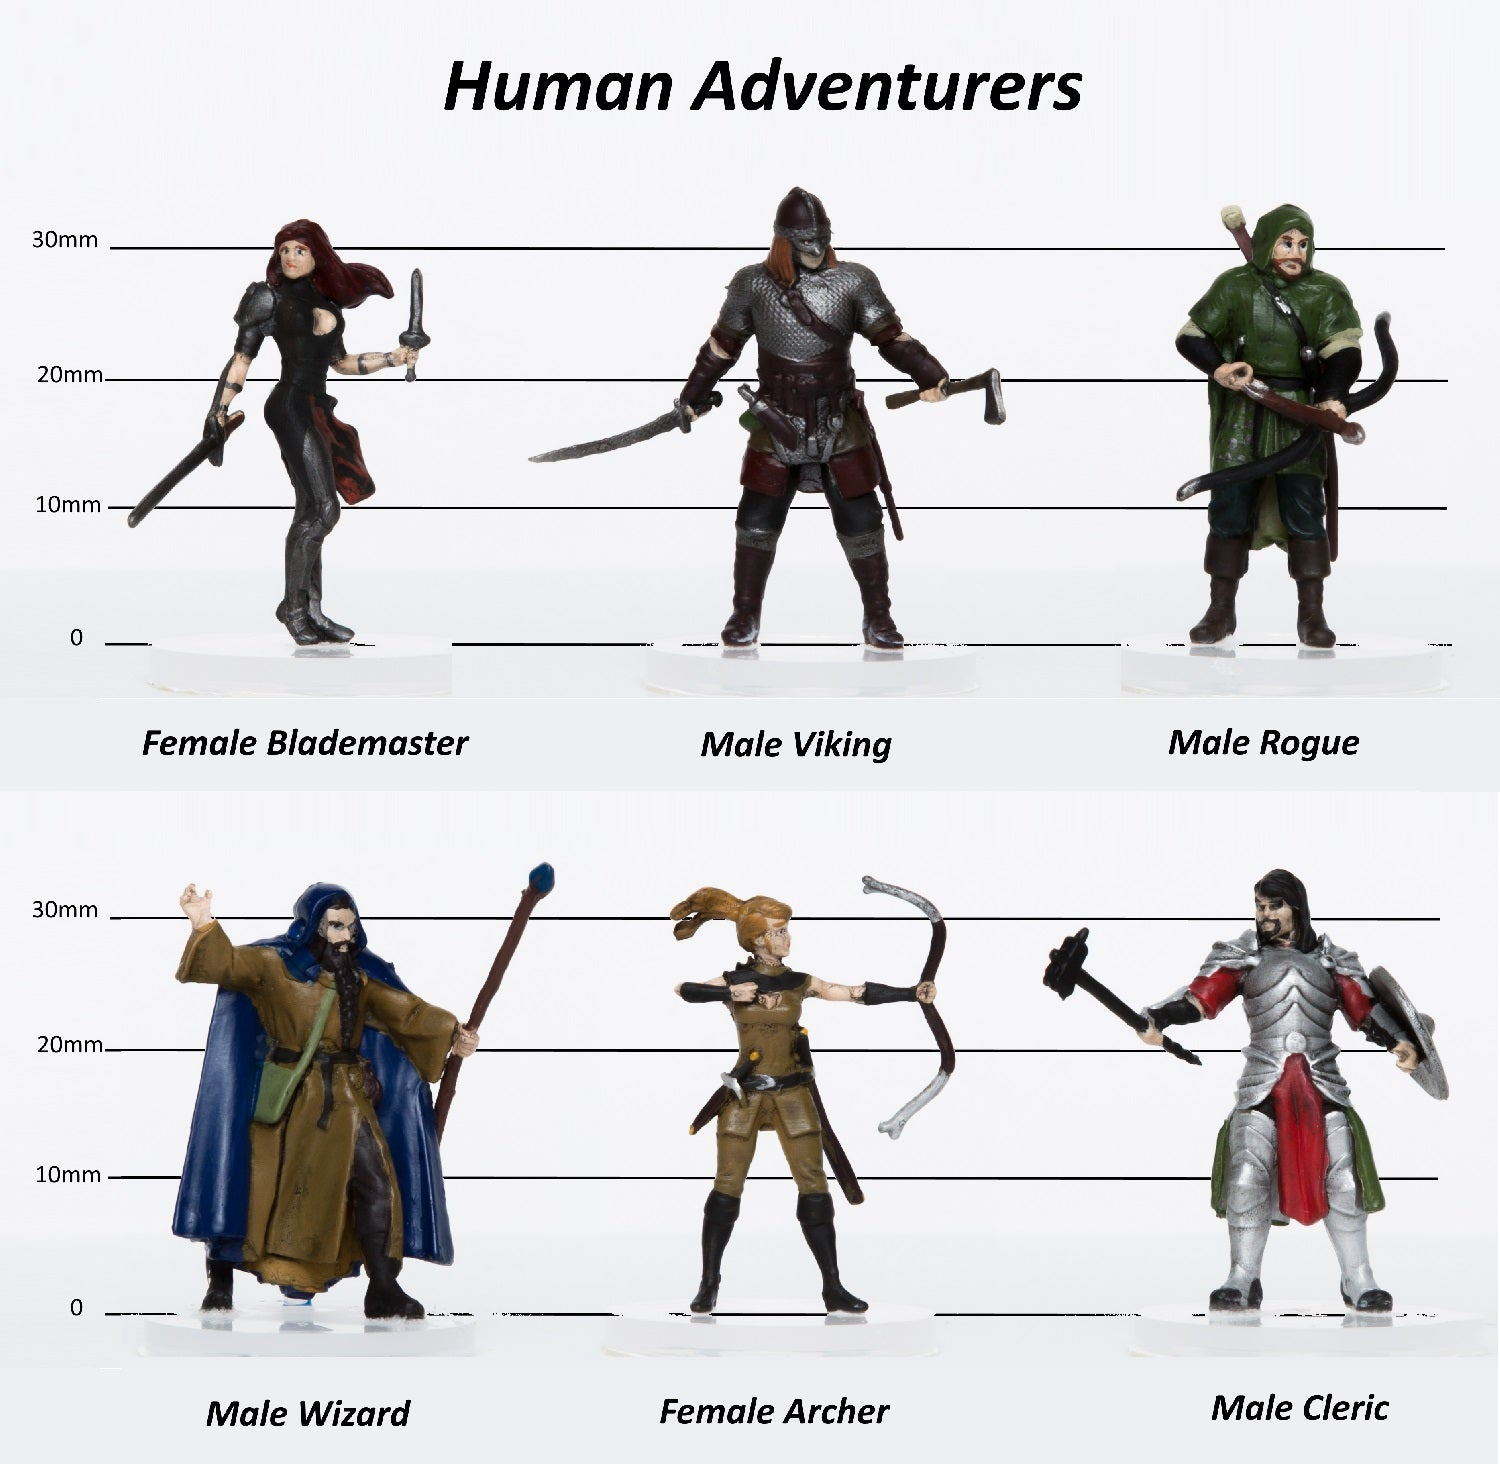 Human Adventurers Party of 6 - Set A - 28mm Plastic Minis